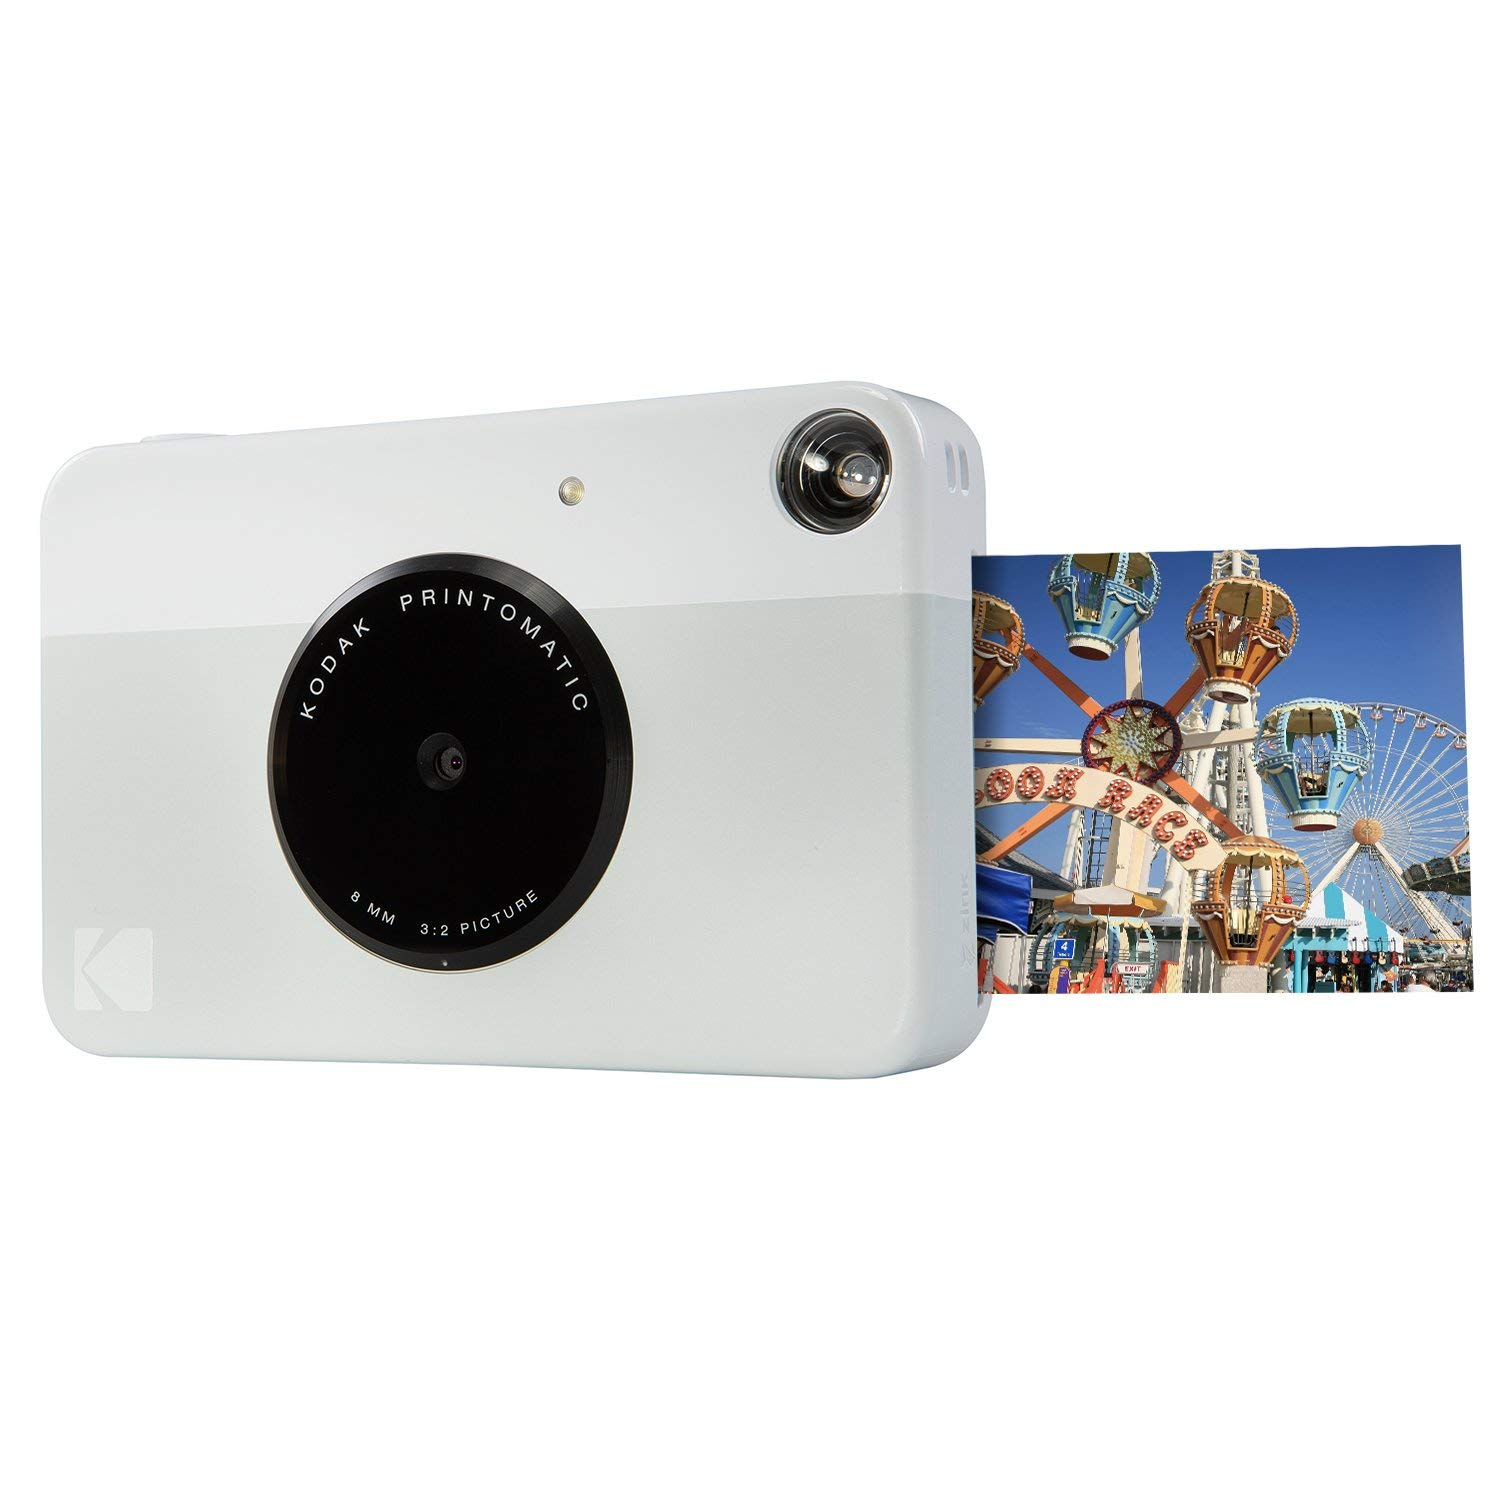 The Kodak Printomatic Camera is the best accessory to take along with travel journals. You can print the picture and add it in during your trip.